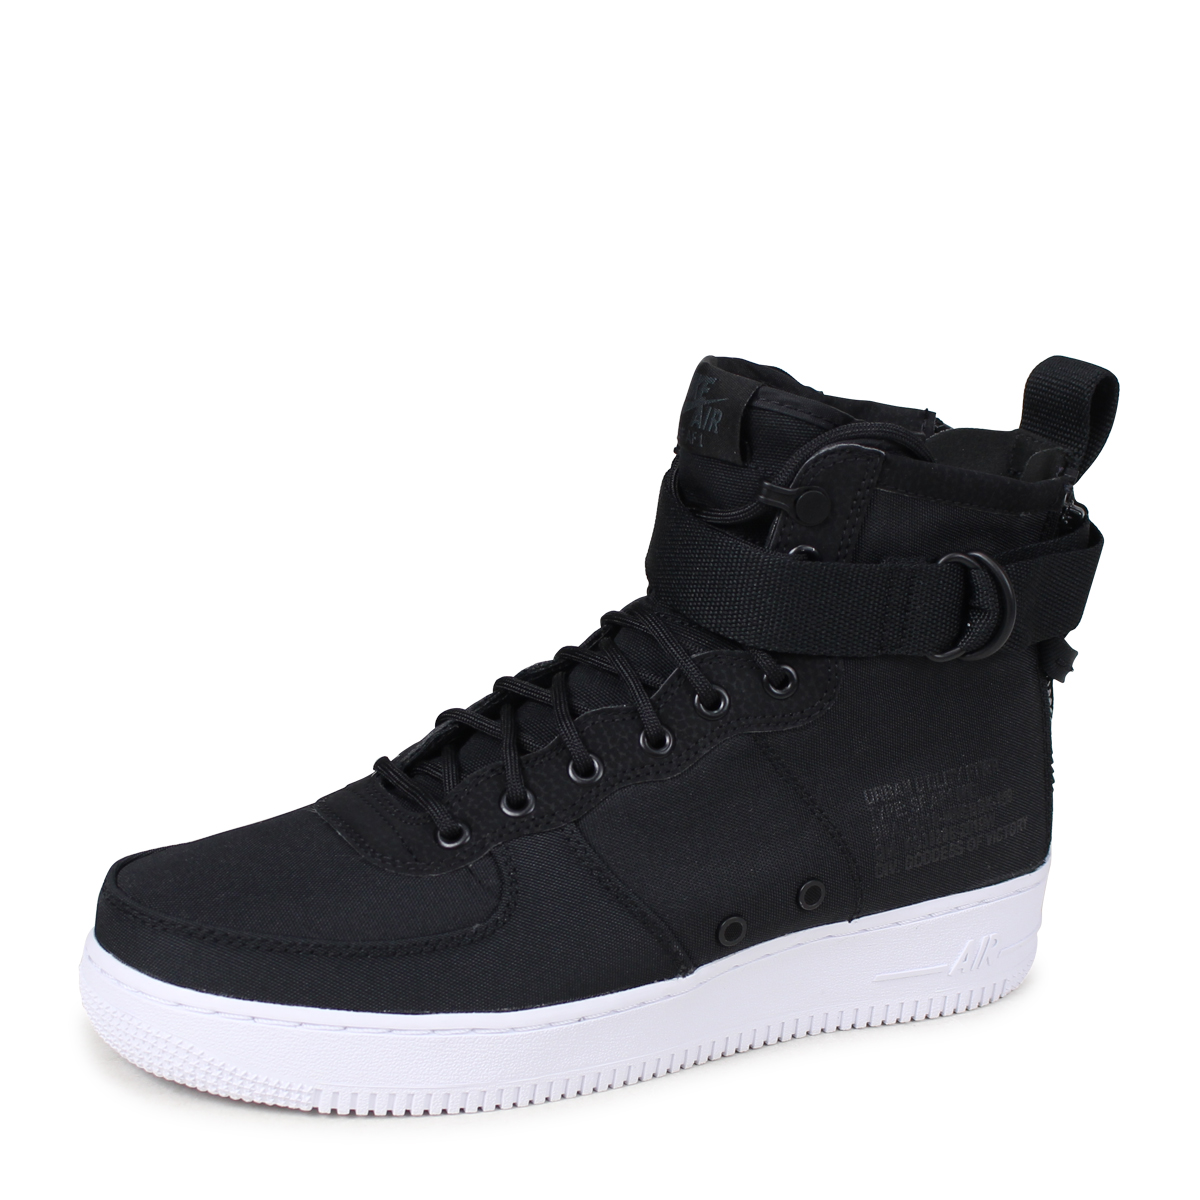 super popular dc818 938f8 NIKE SPECIAL FIELD AIR FORCE 1 QS Nike air force 1 MID sneakers men special  field 917,753-006 SF AF1 red  load planned Shinnyu load in reservation  product ...